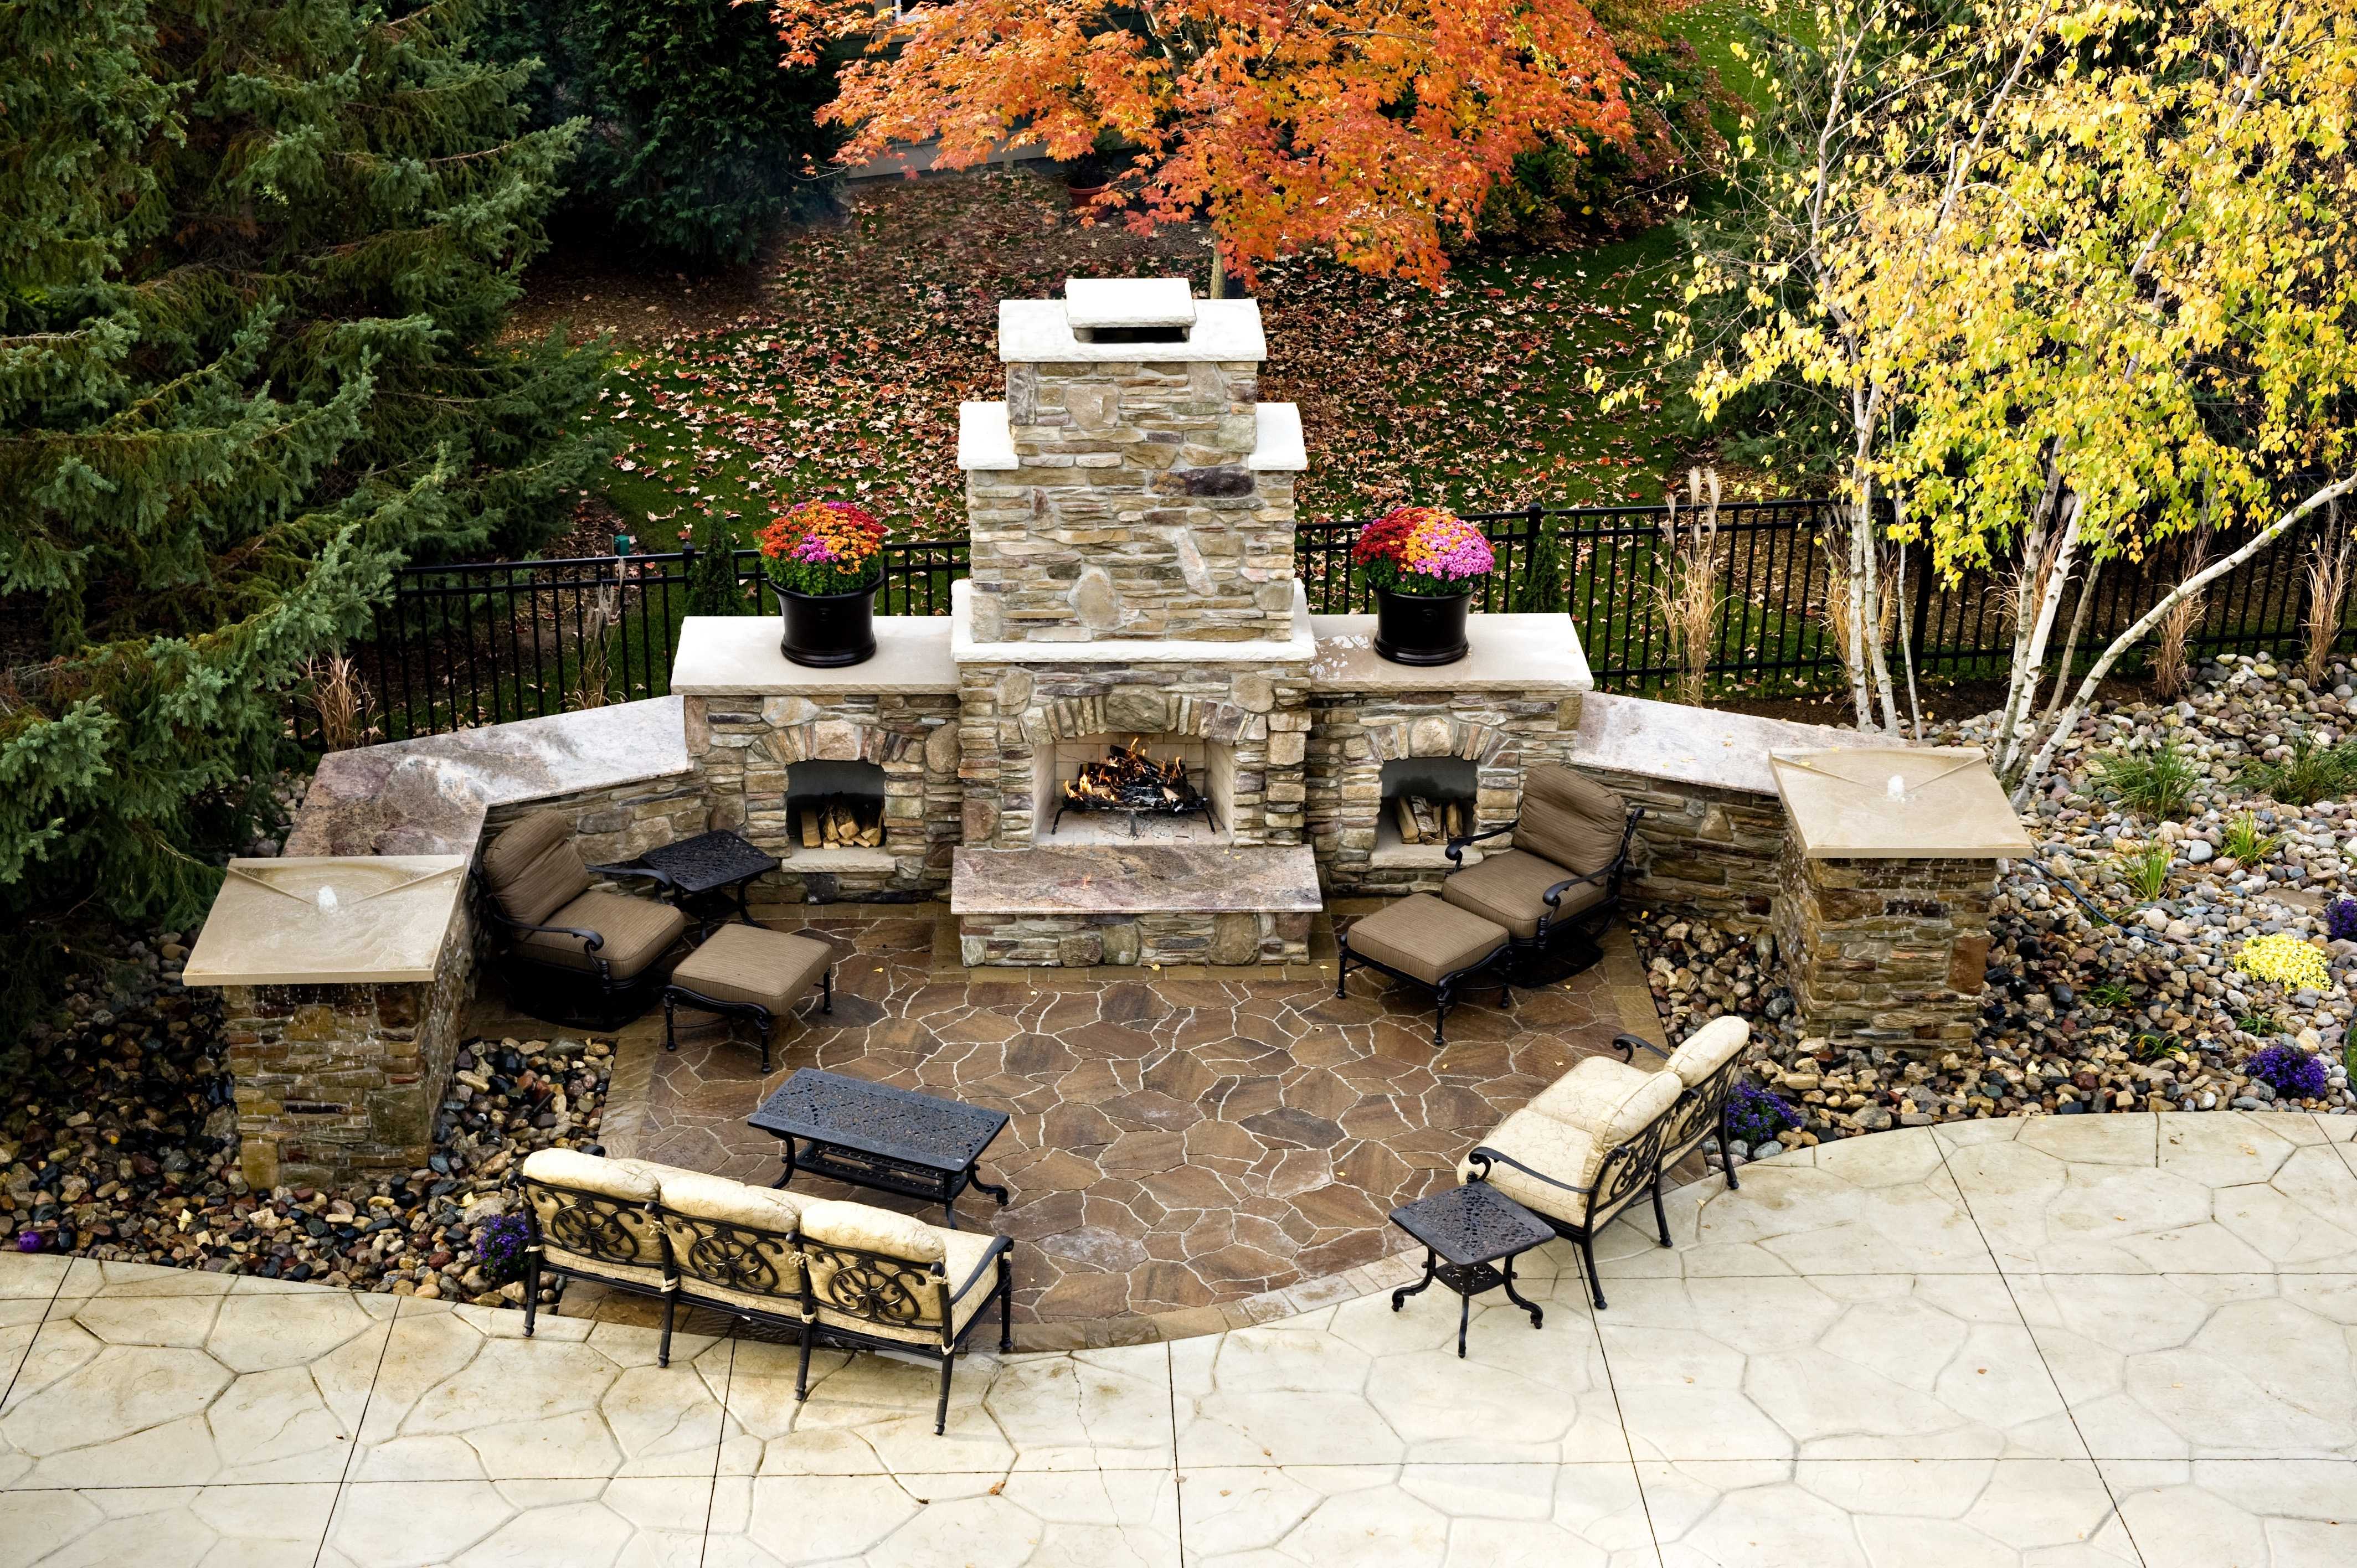 Backyard Paradise Landscaping Pertaining To Really Encourage My Blog in 15 Genius Concepts of How to Makeover Backyard Paradise Landscaping